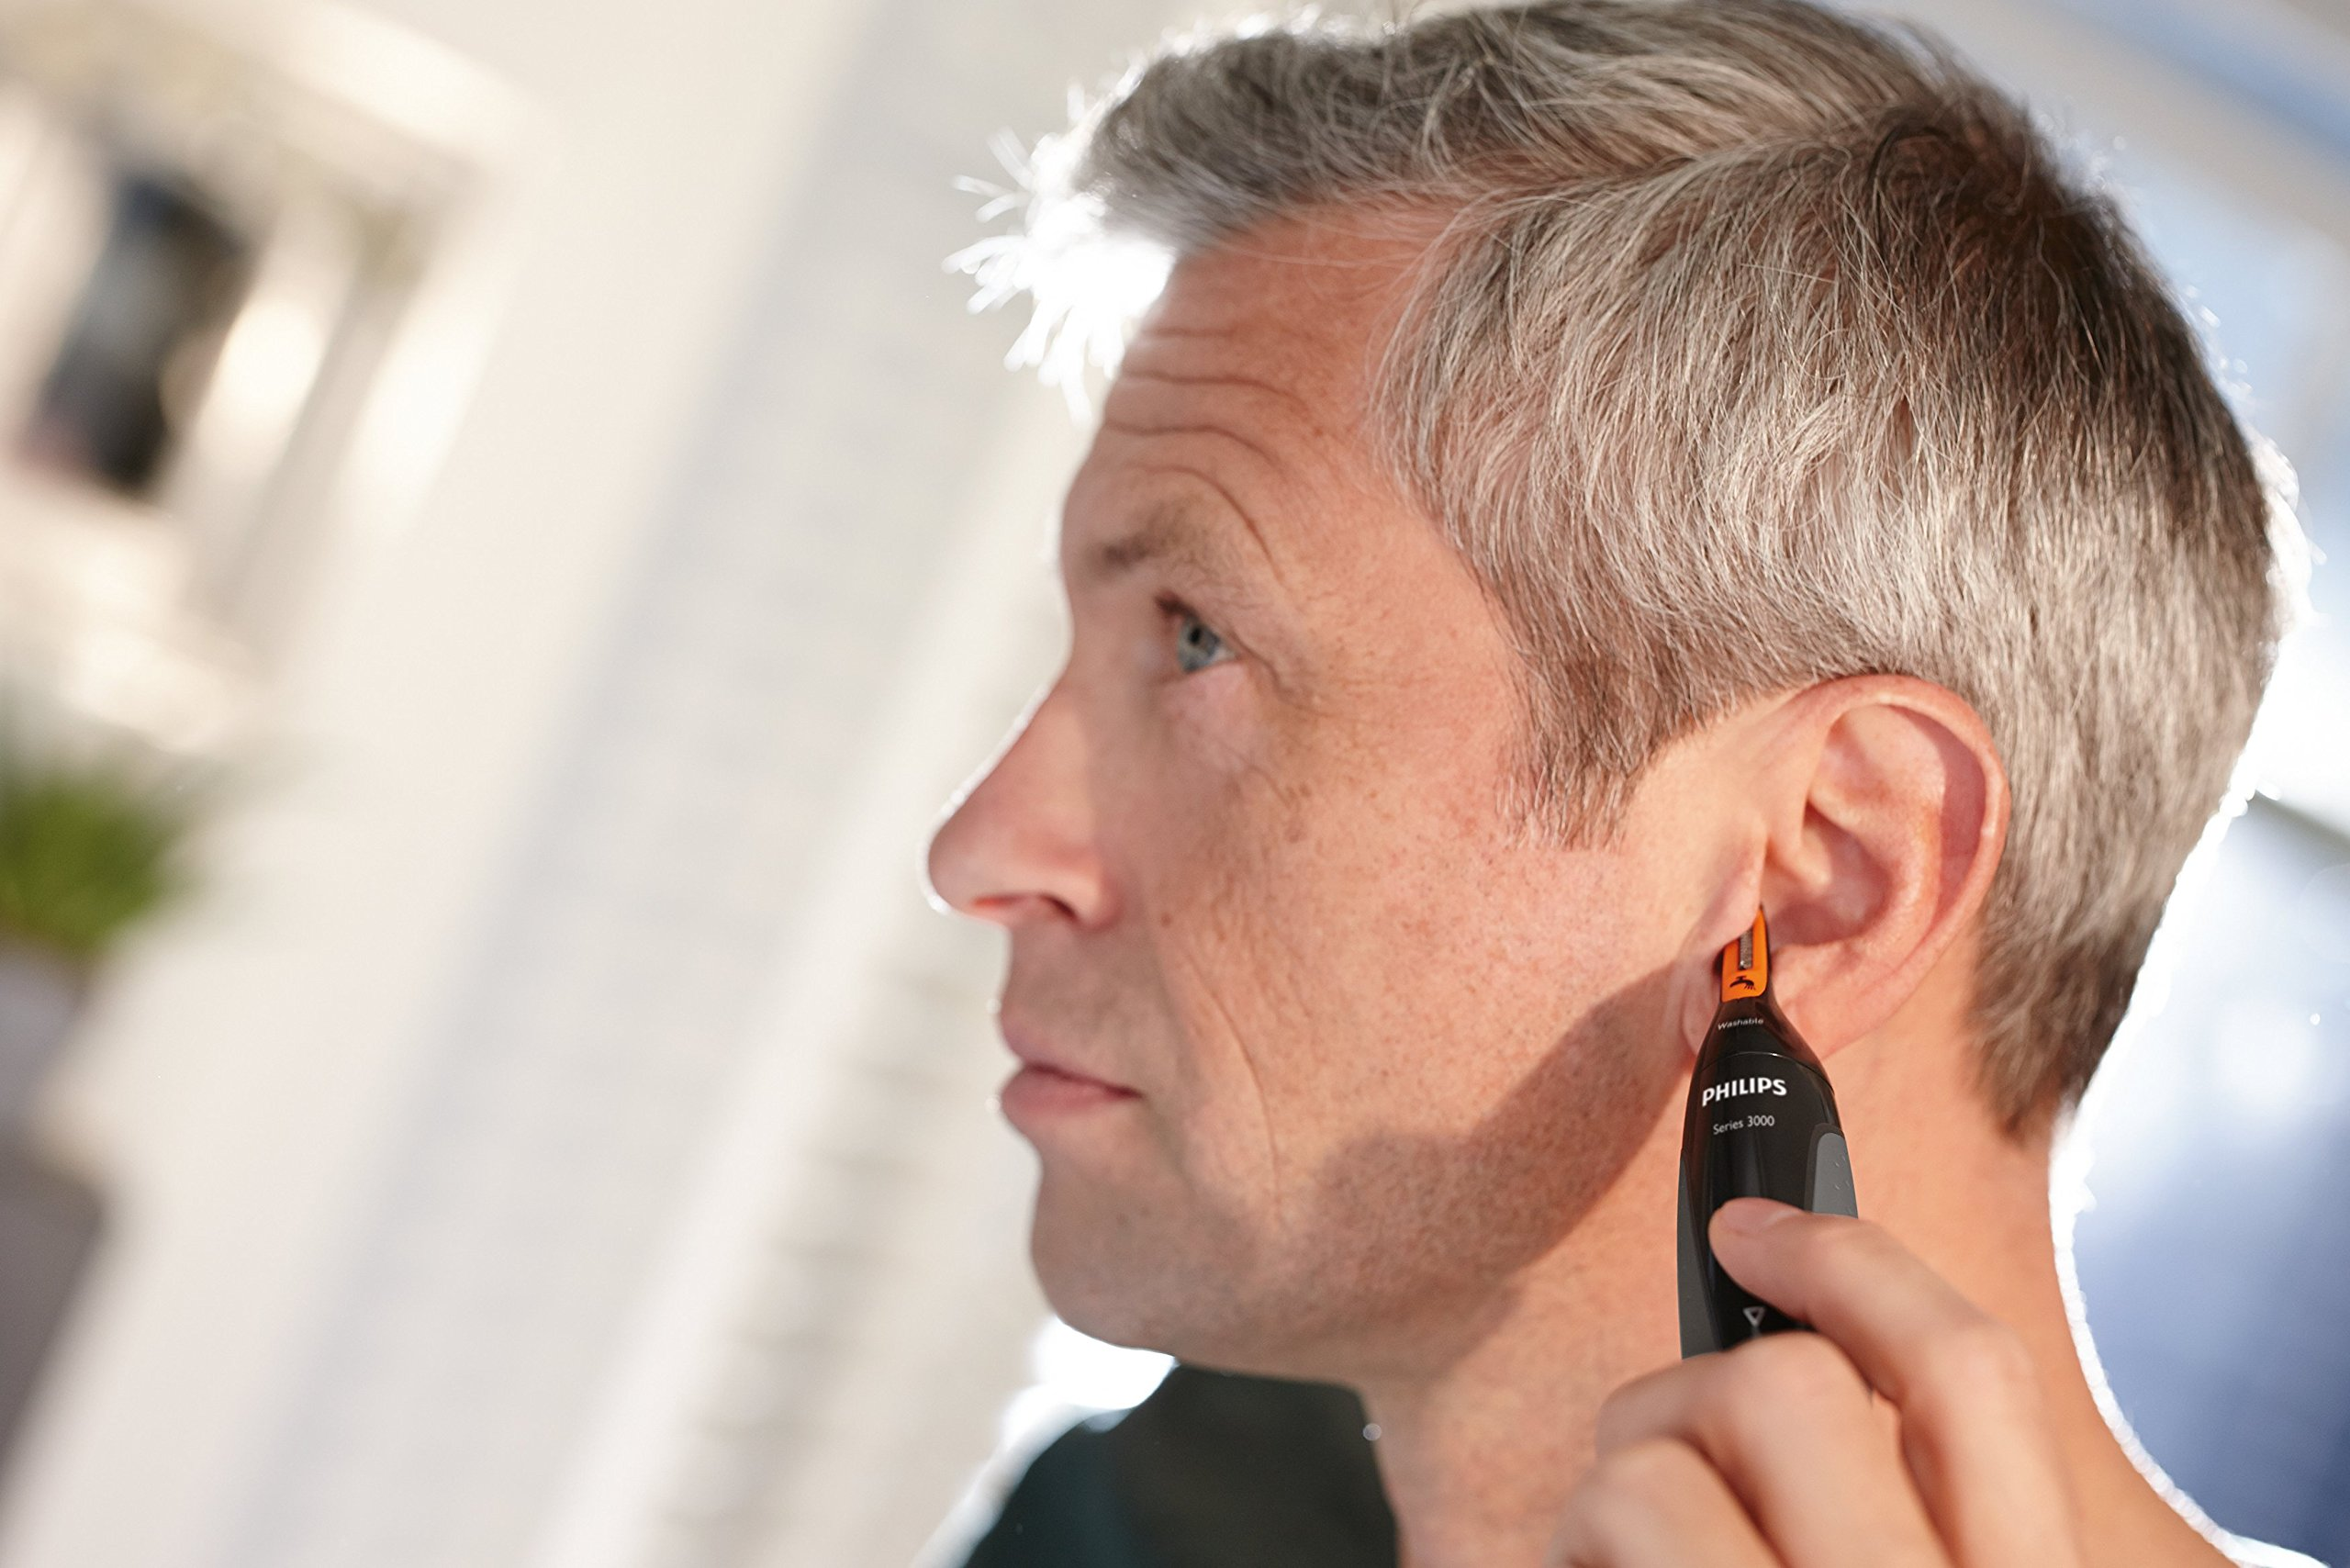 Philips Series 3000 Ear, Eyebrow & Nose Trimmer with 2 Eyebrow Combs & Pouch, Black & Grey, NT3160/10 4